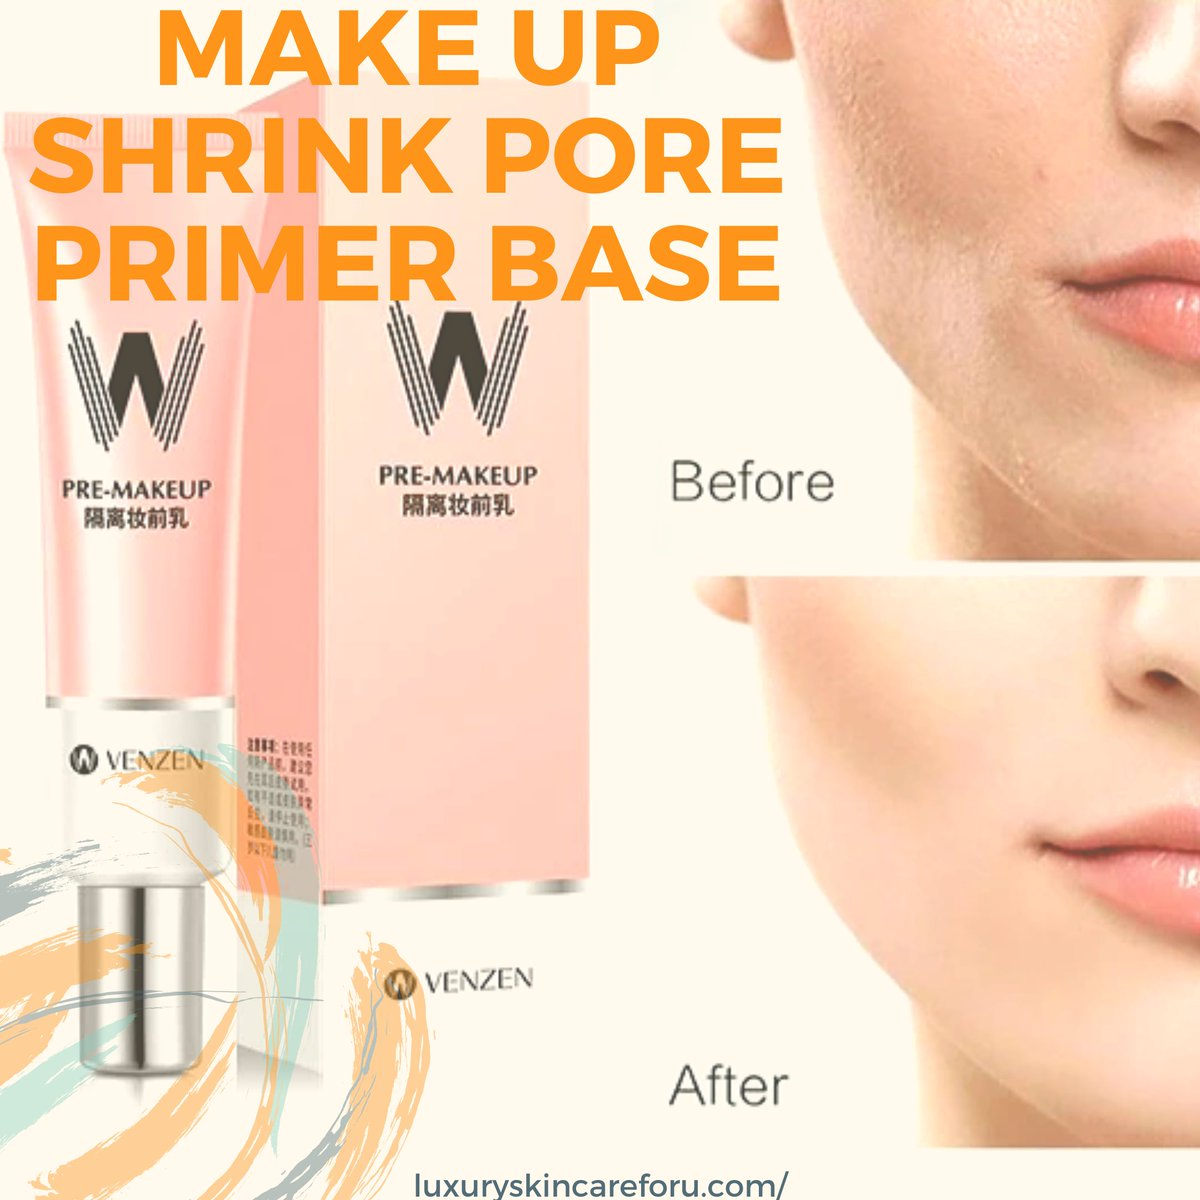 Make Up Shrink Pore #beautyproducts #skincareproducts #skincare #beauty #beautytips #luxuryskincare4u #onlineshoppingstore #verifiedproducts #glowingskin #glowingskincare #lips #fashion #business #lifestyle #businesslifestyle #beautybloggers  #instagramfashionblogger #twitter